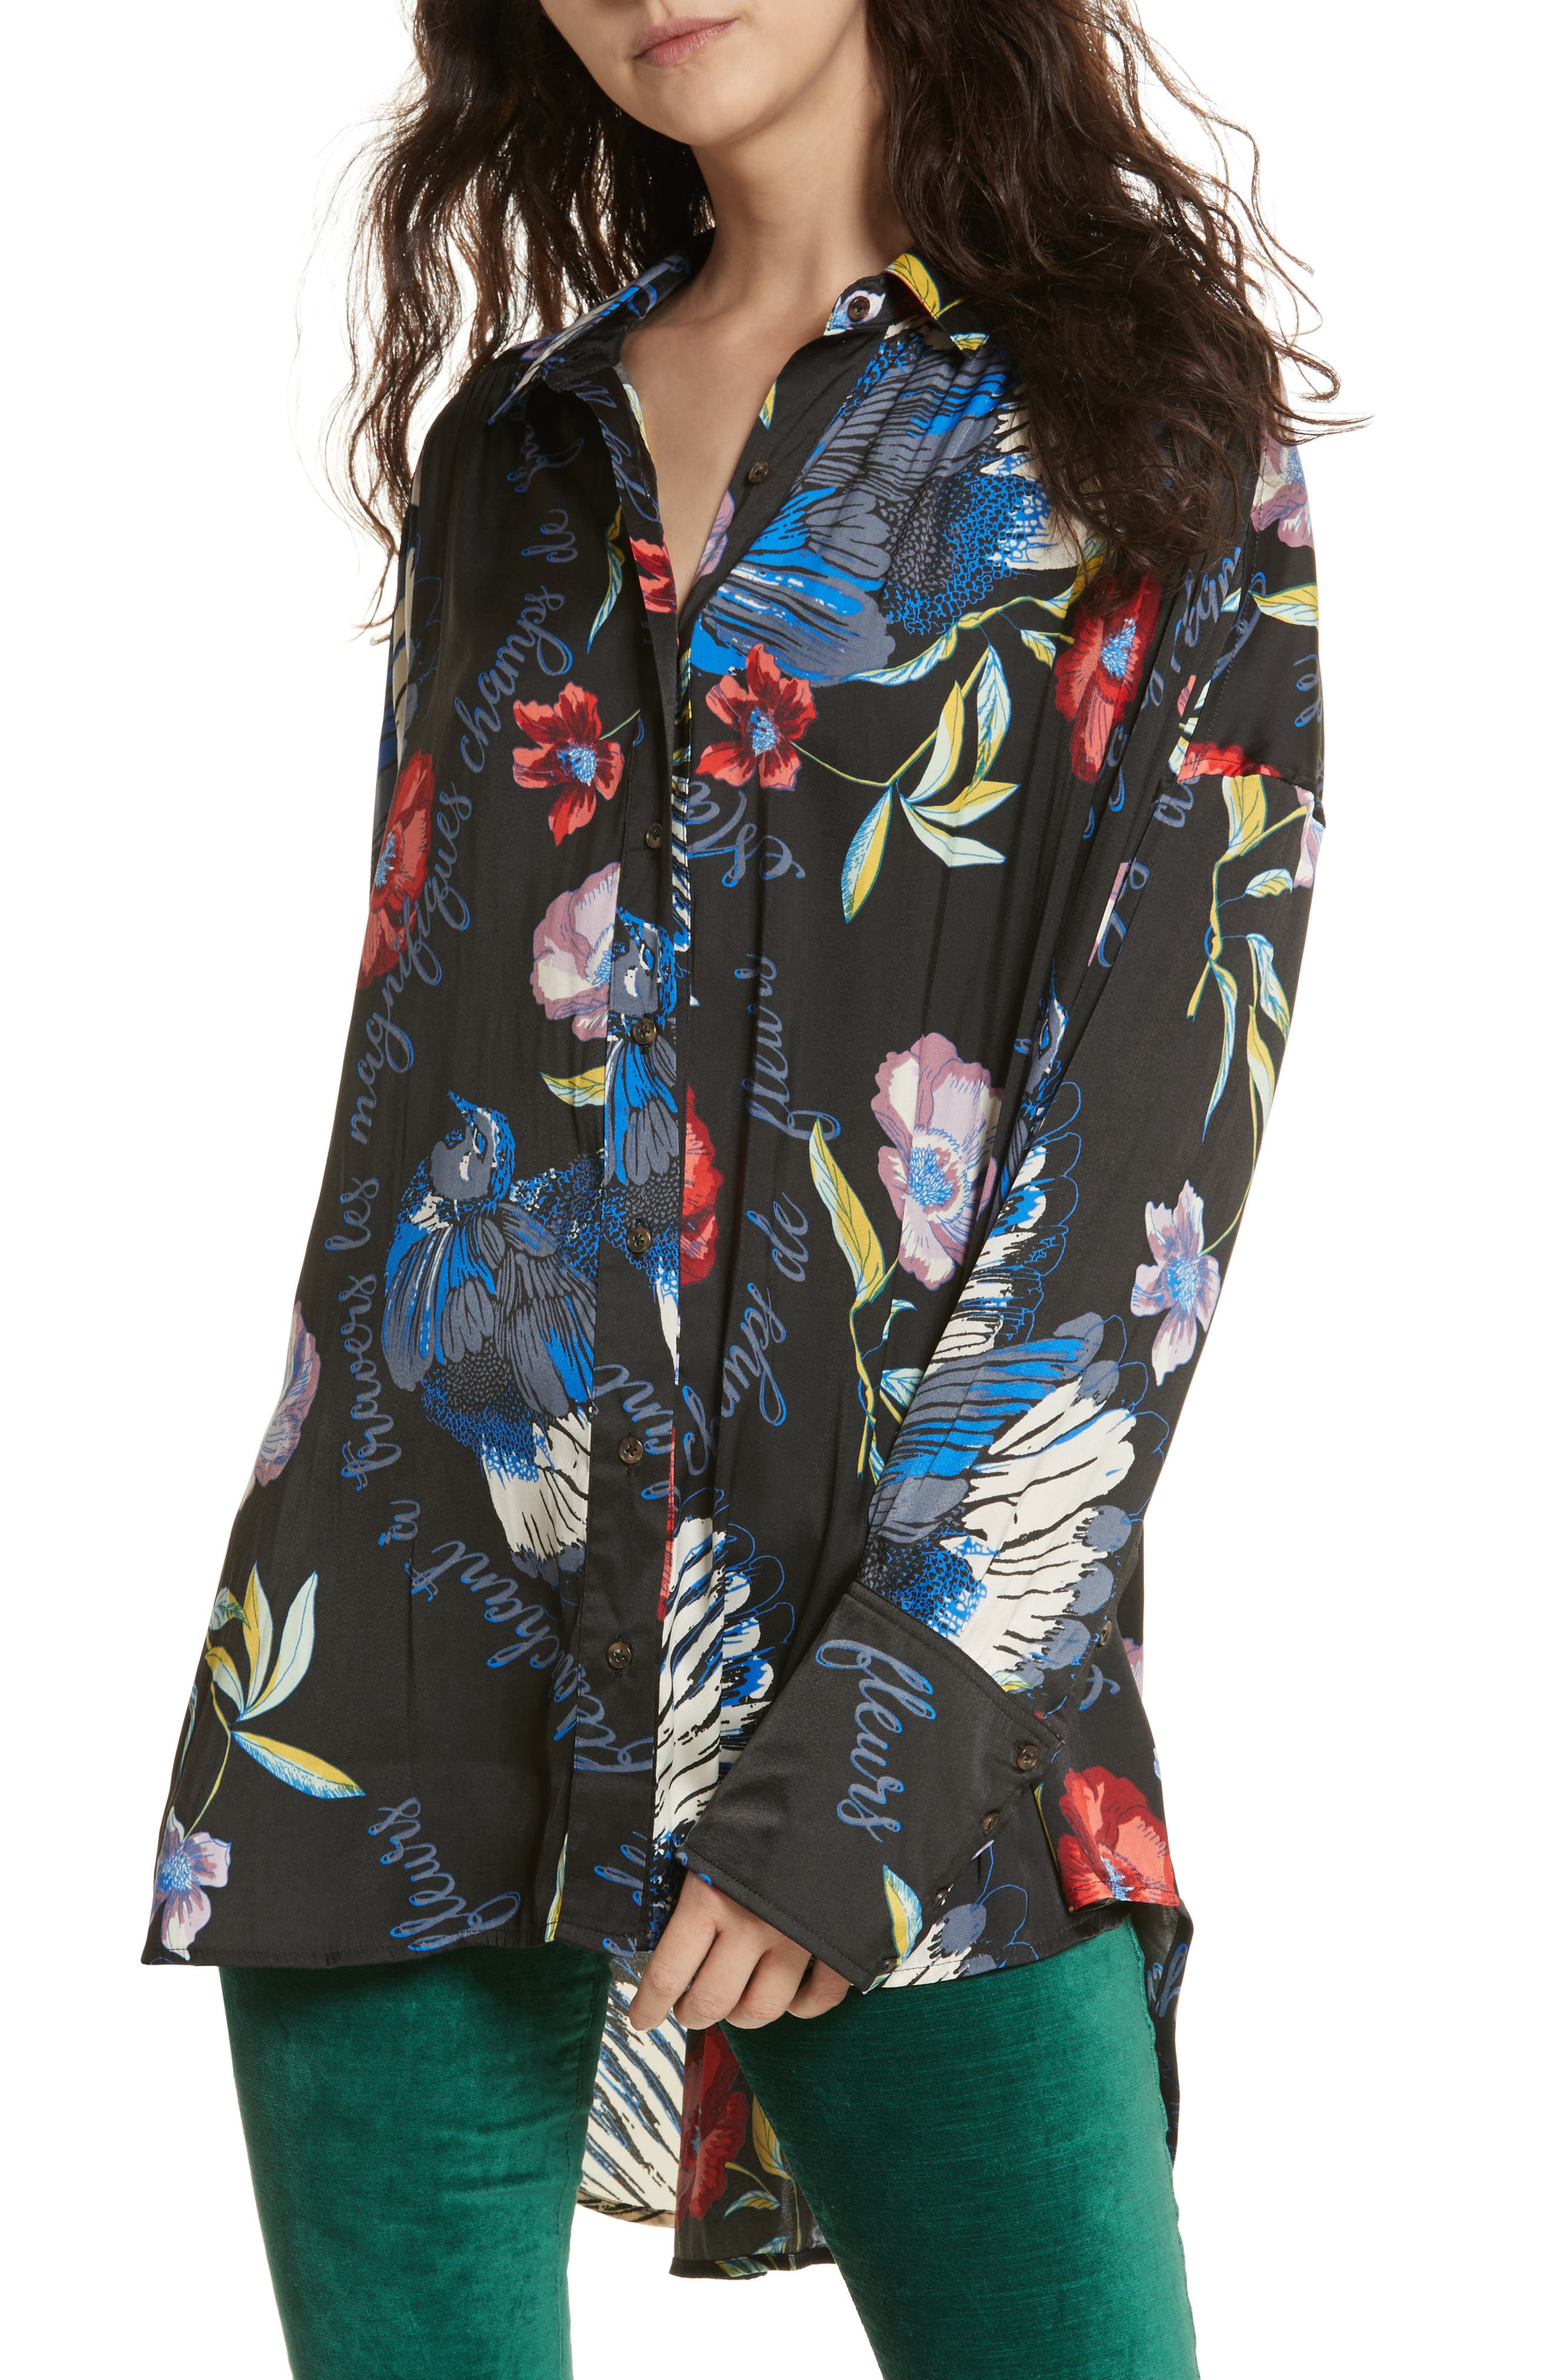 Silky Nights Blouse,                         Main,                         color, Black